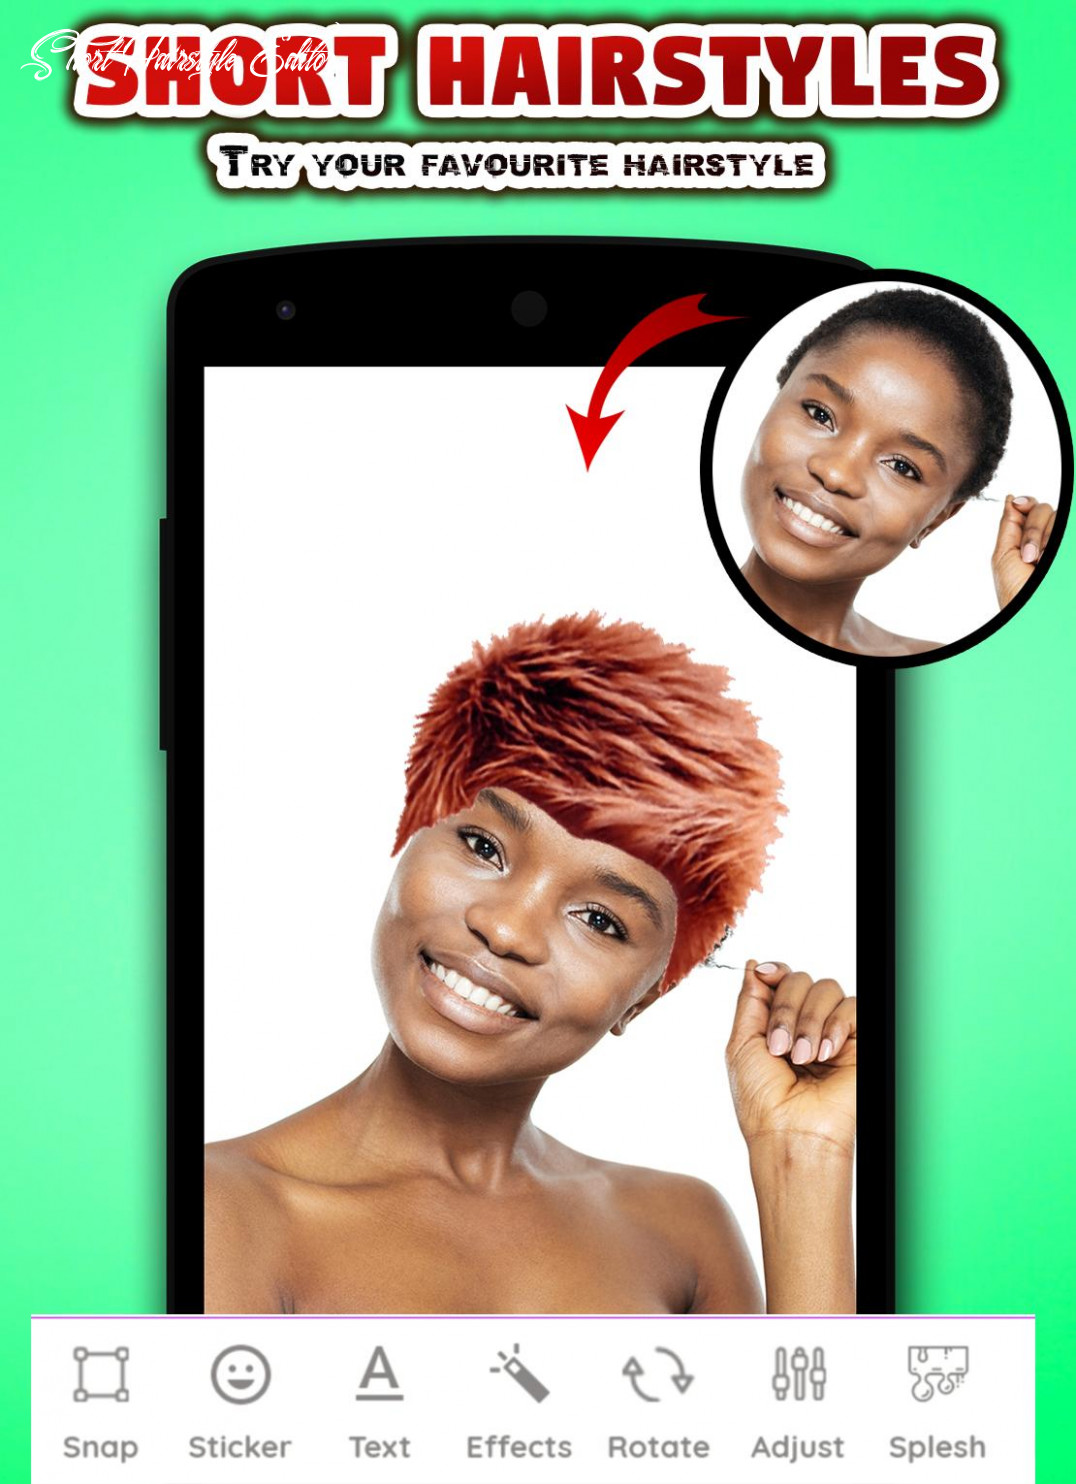 Short hair hairstyles for women photo editor for android apk